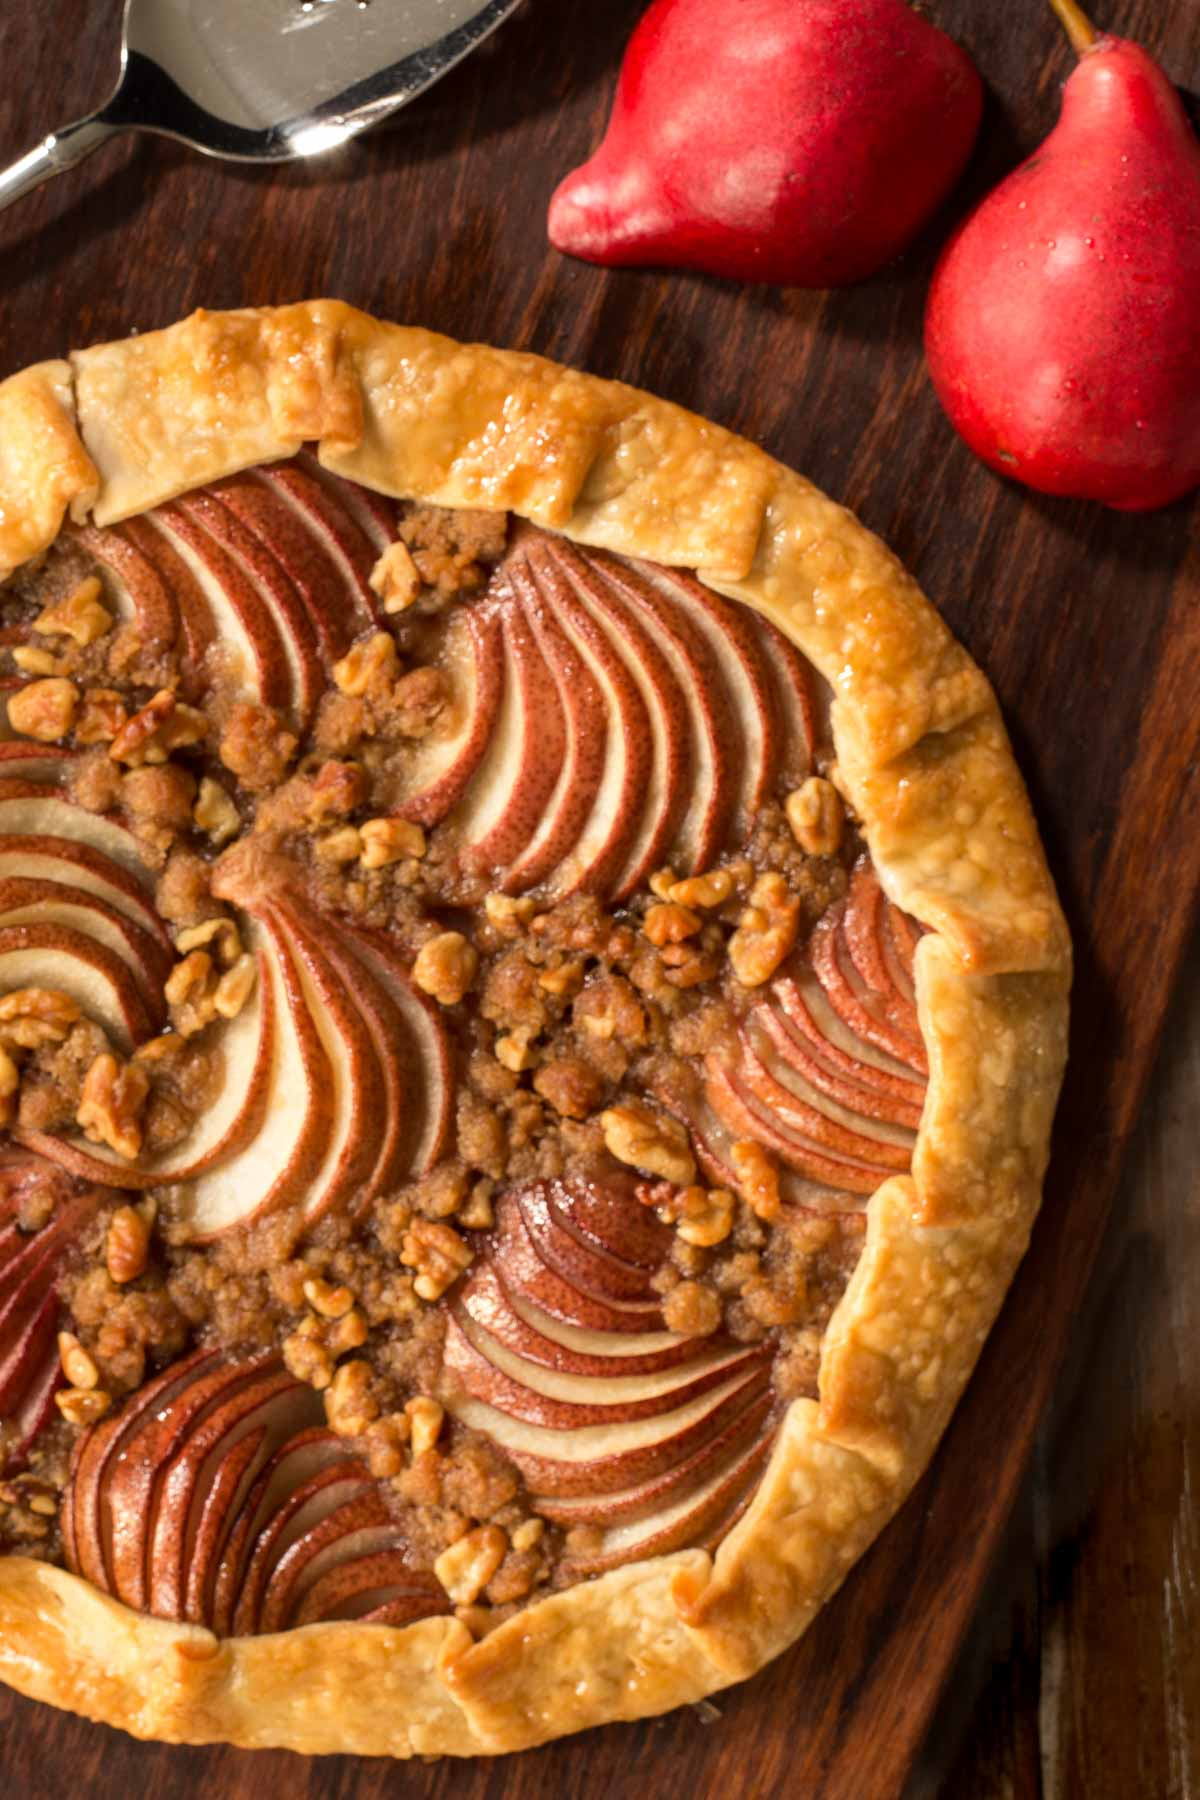 Overhead vertical photo of a Maple-Glazed Red Pear Galette on a wooden cutting board.